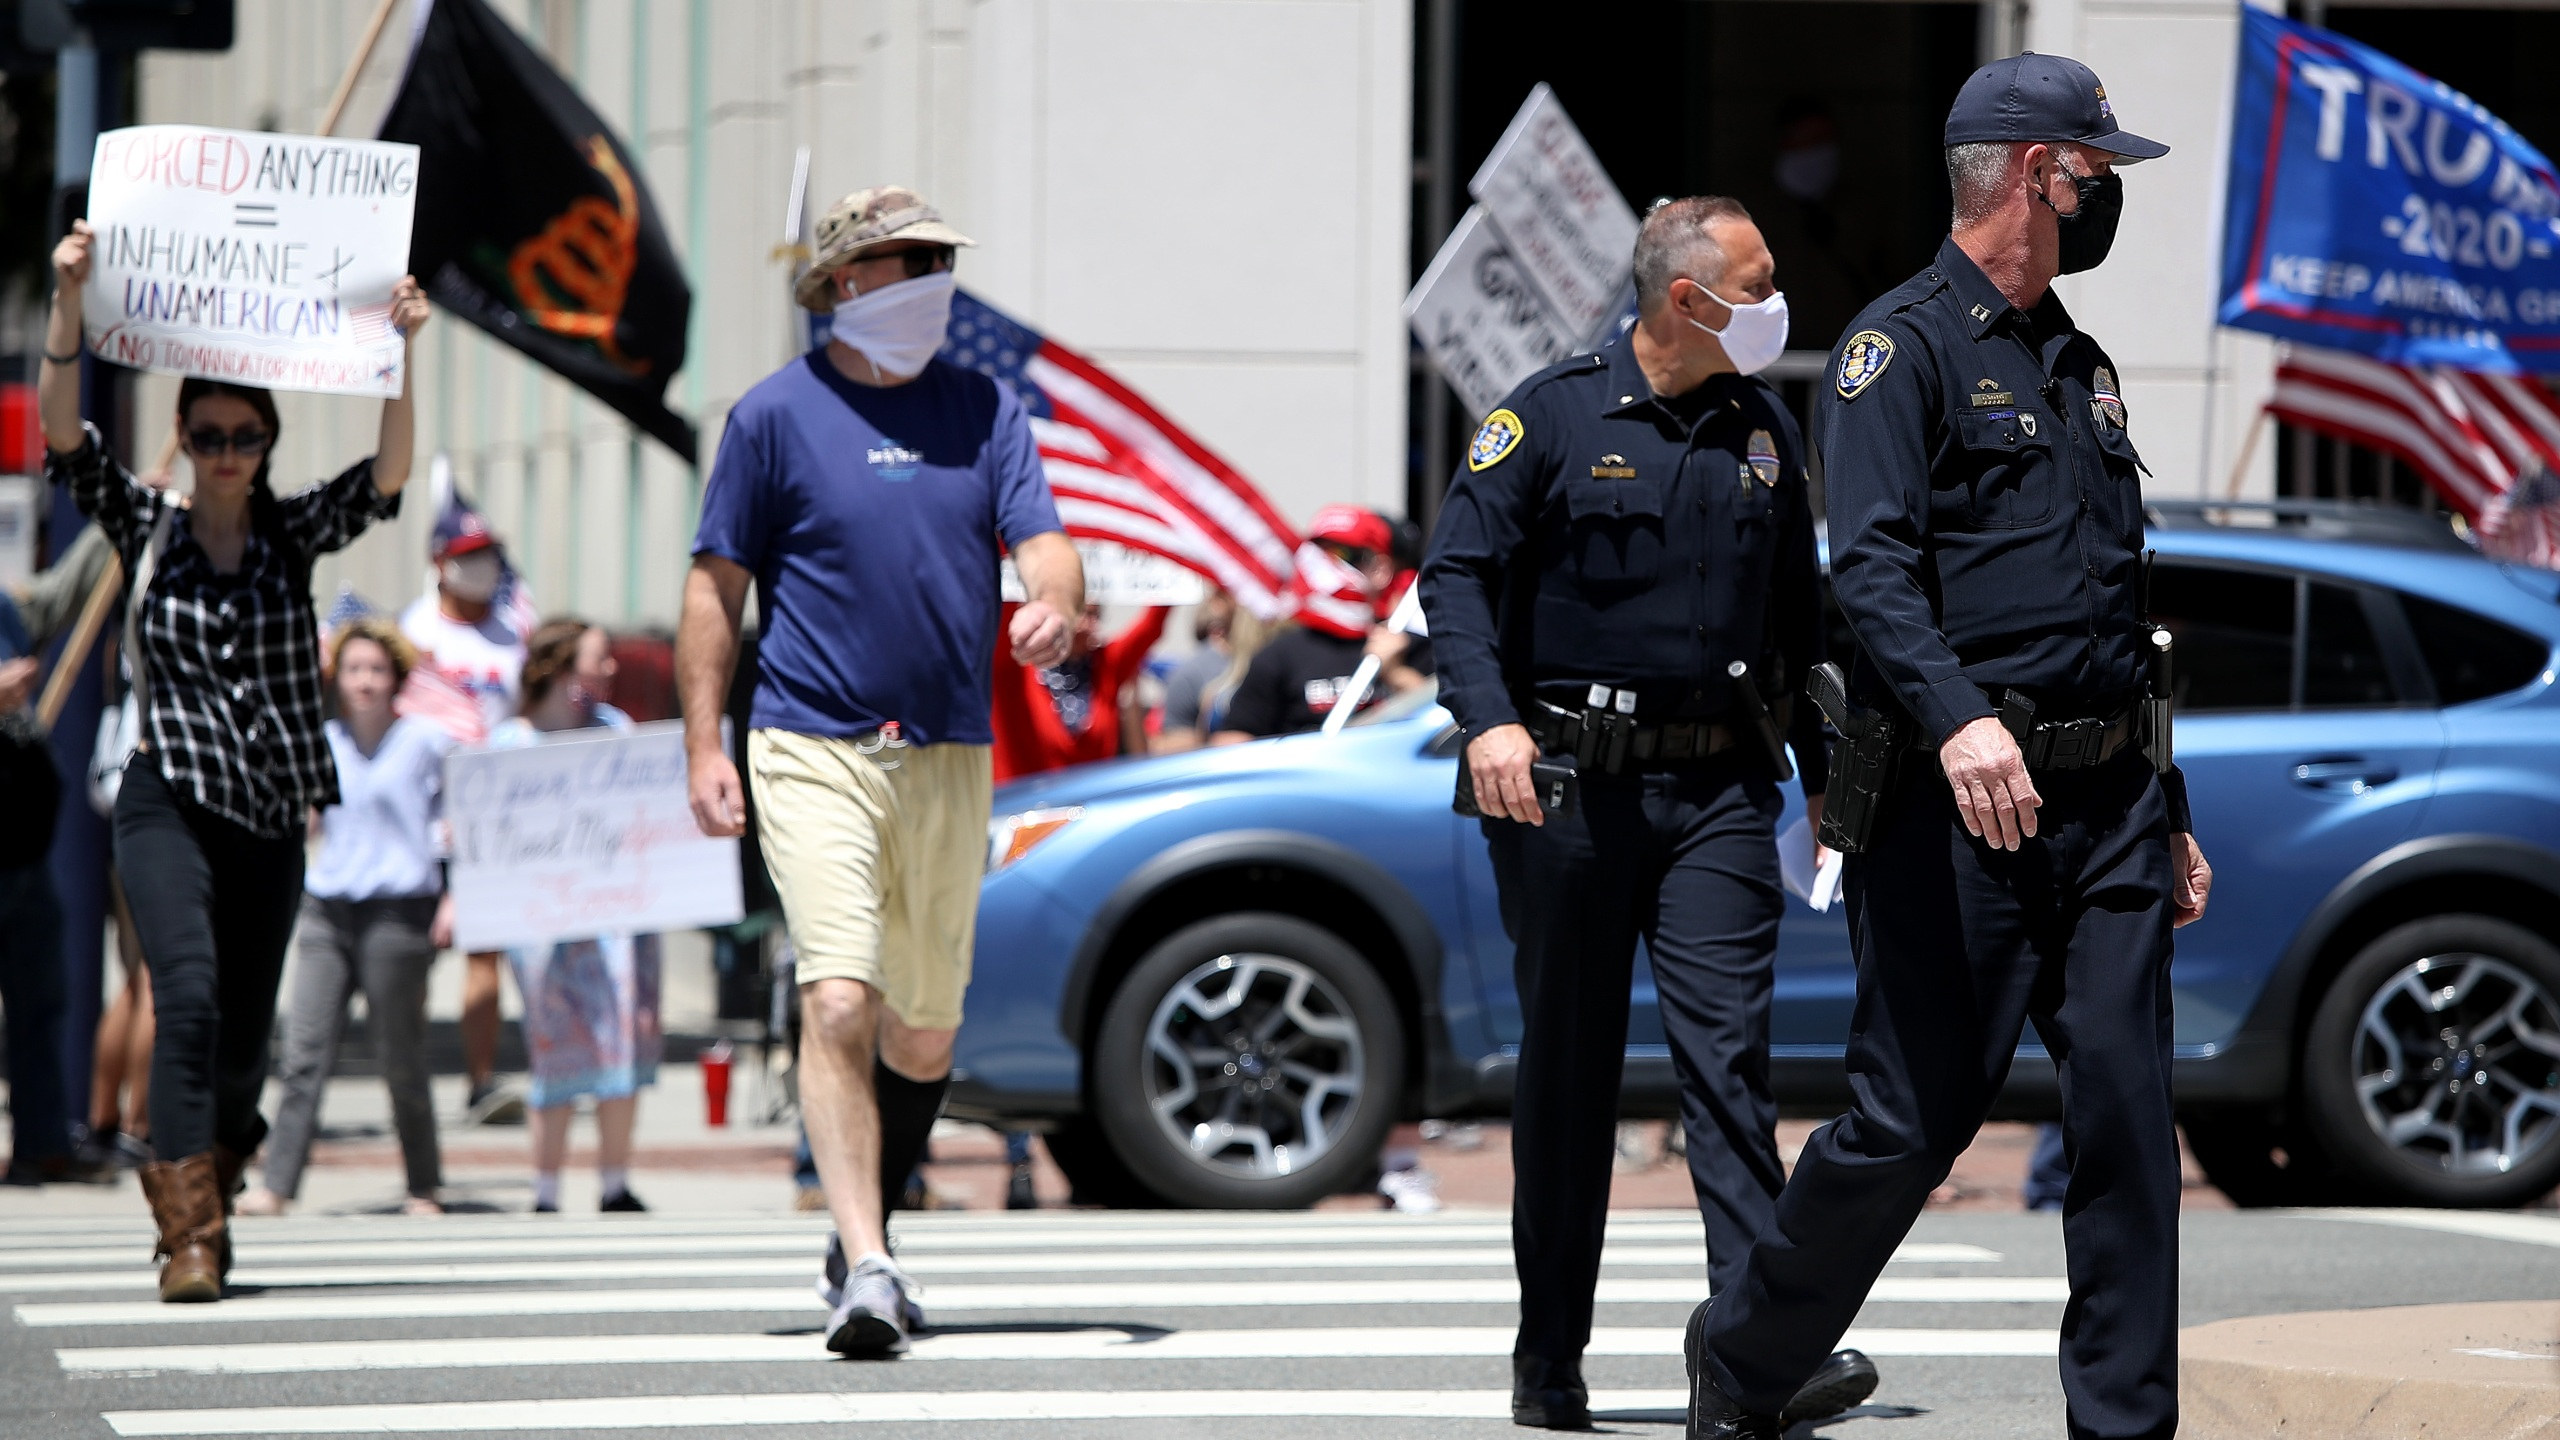 San Diego Police Department officers look on as activists hold signs and protest the California lockdown due to the coronavirus pandemic on May 1, 2020, in San Diego. (Sean M. Haffey/Getty Images)